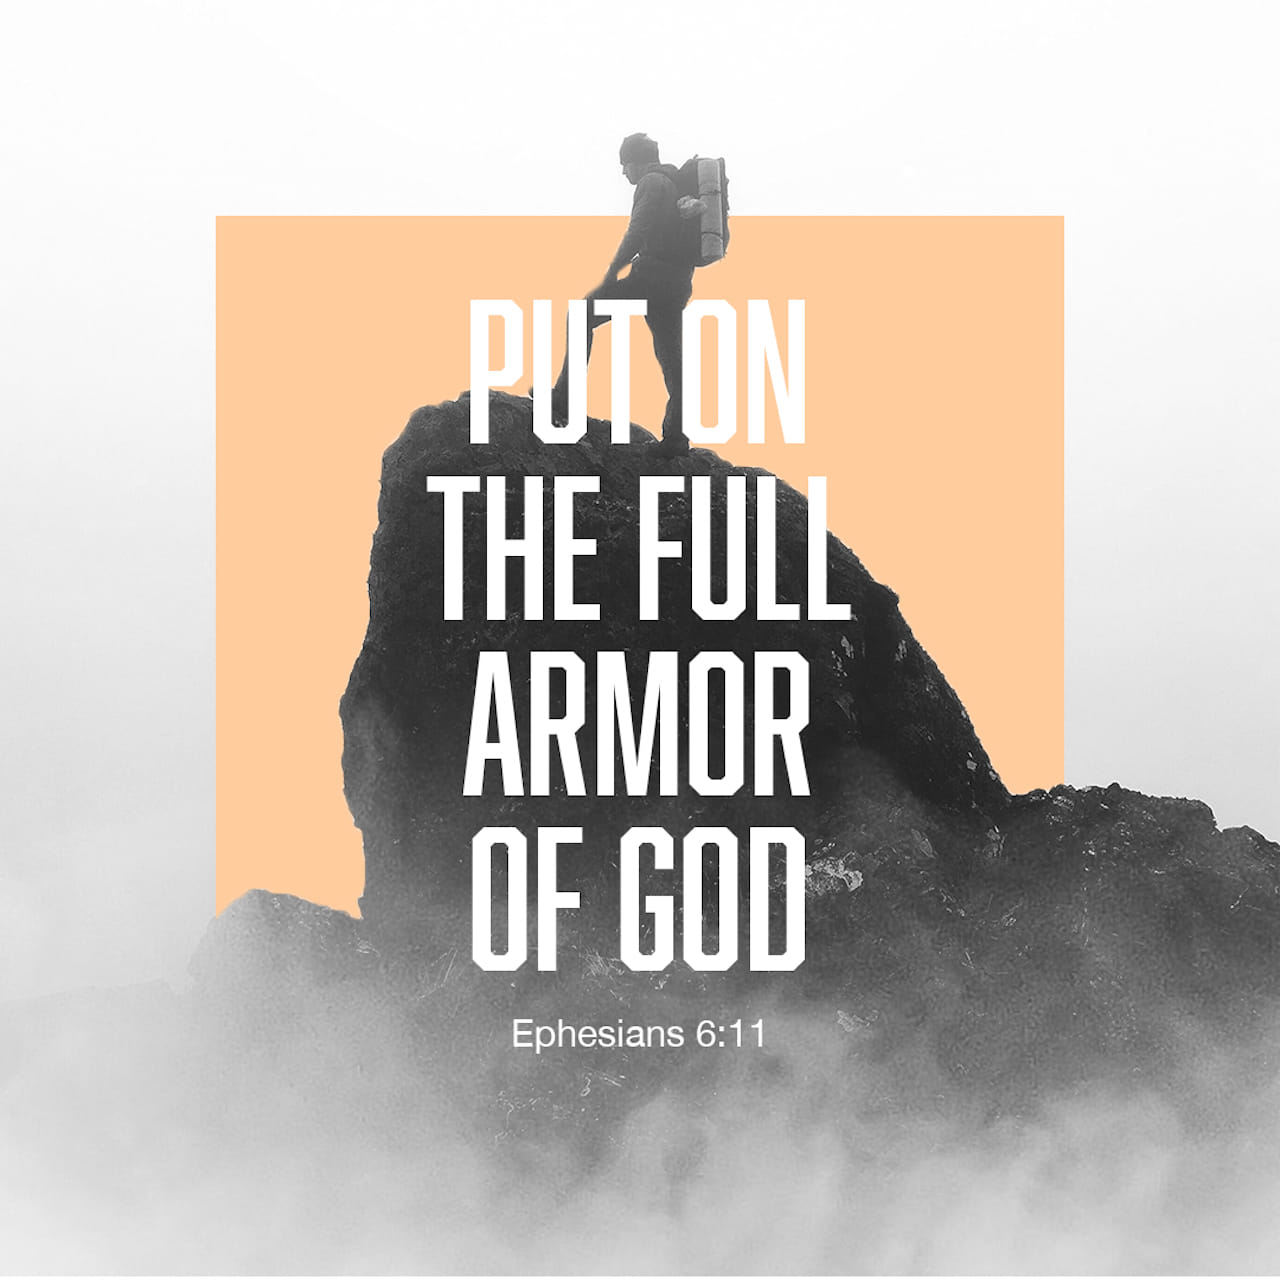 Finally, be strong in the Lord and in his mighty power. Put on the full armor of God, so that you can take your stand against the devil's schemes. For our struggle is not against flesh and blood, but against the rulers, against the authorities, against the powers of this dark world, and against the spiritual forces of evil in the heavenly realms.